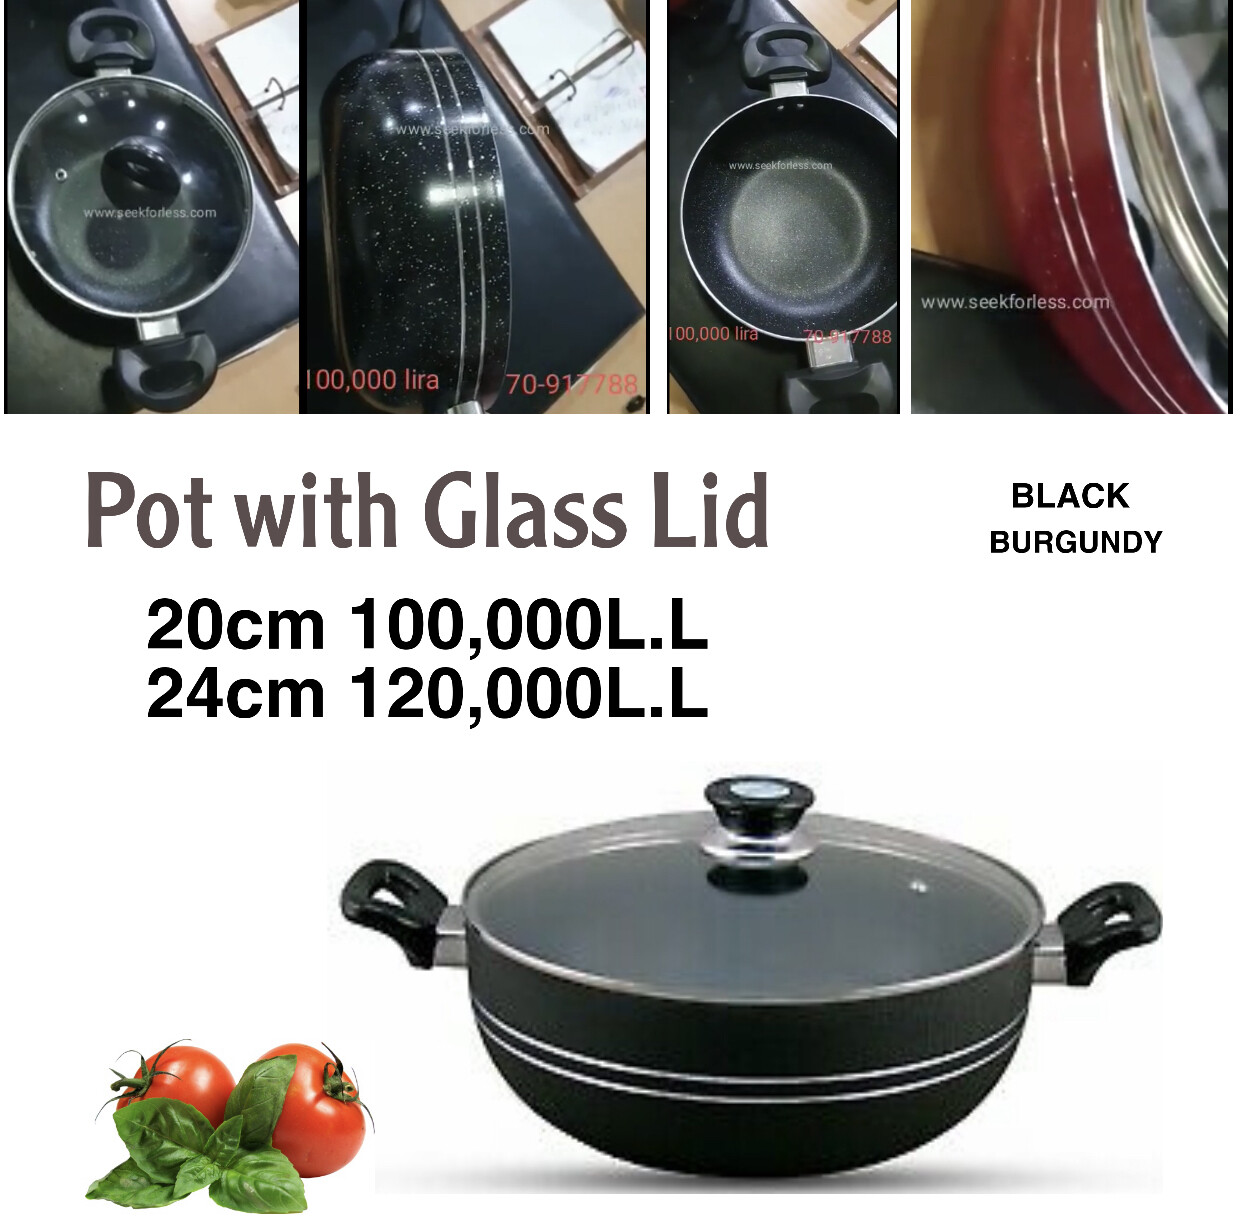 Pot With Glass Lid